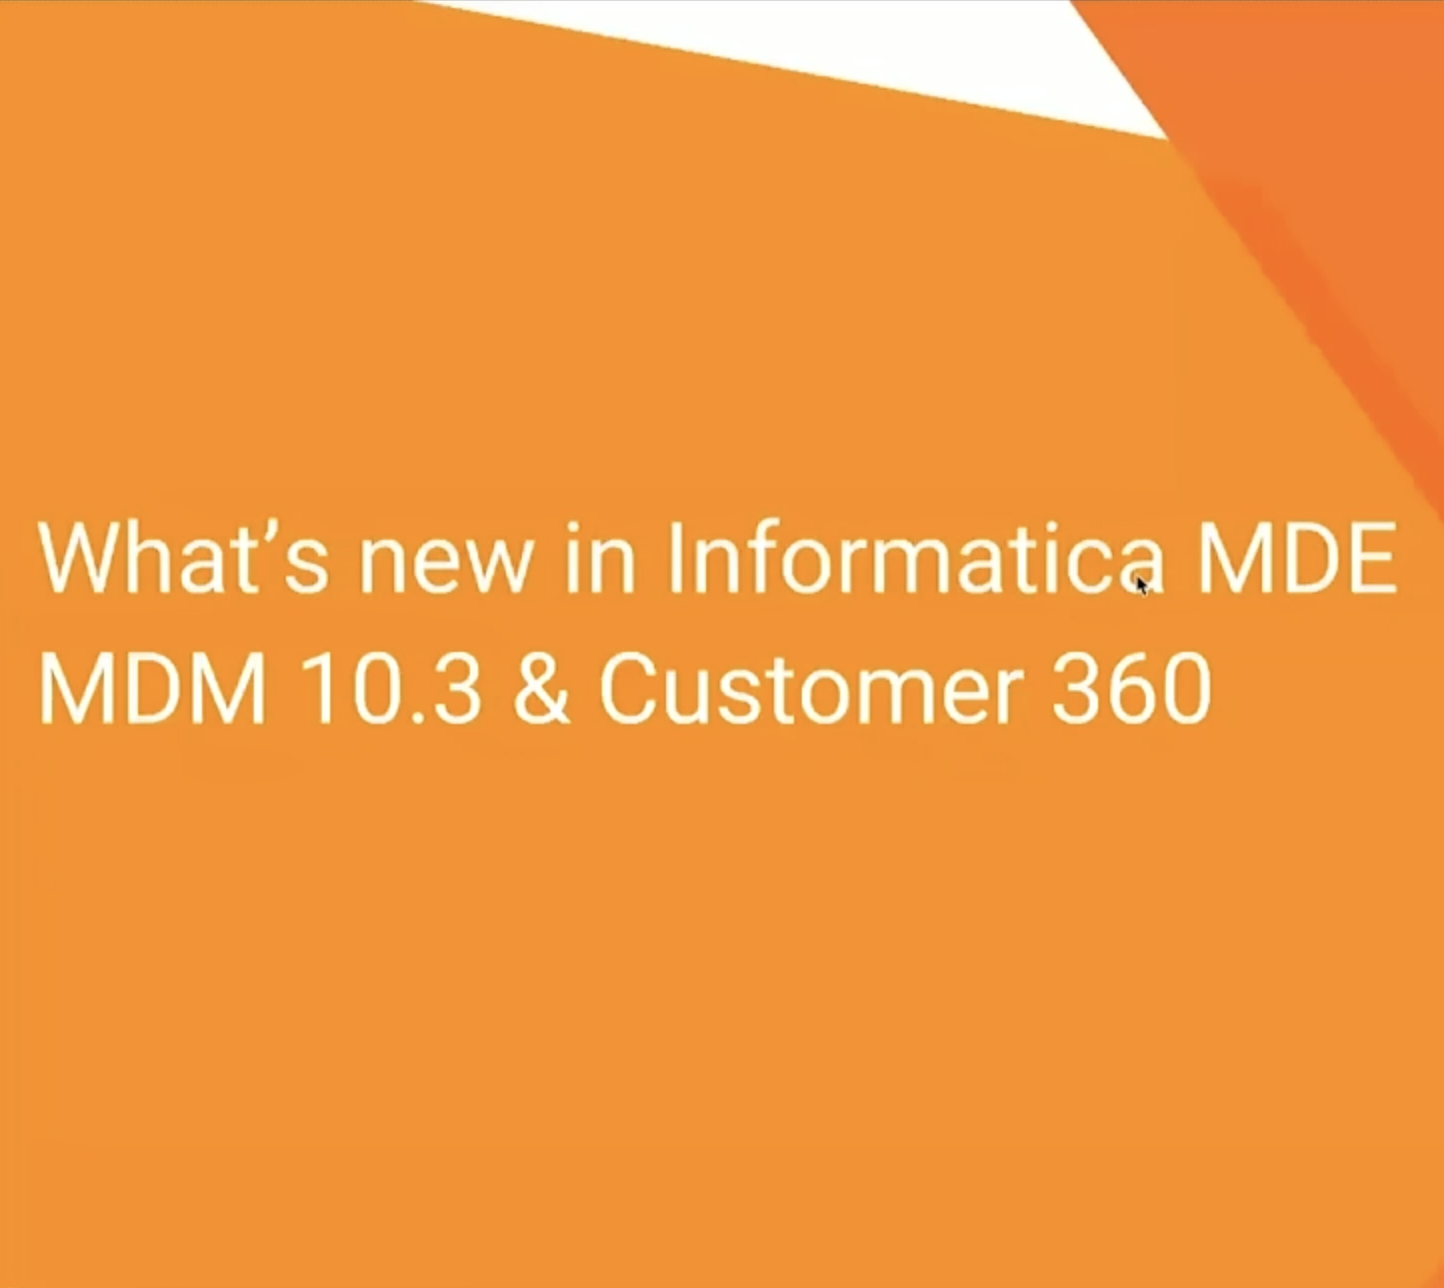 What's New in Informatica MDM